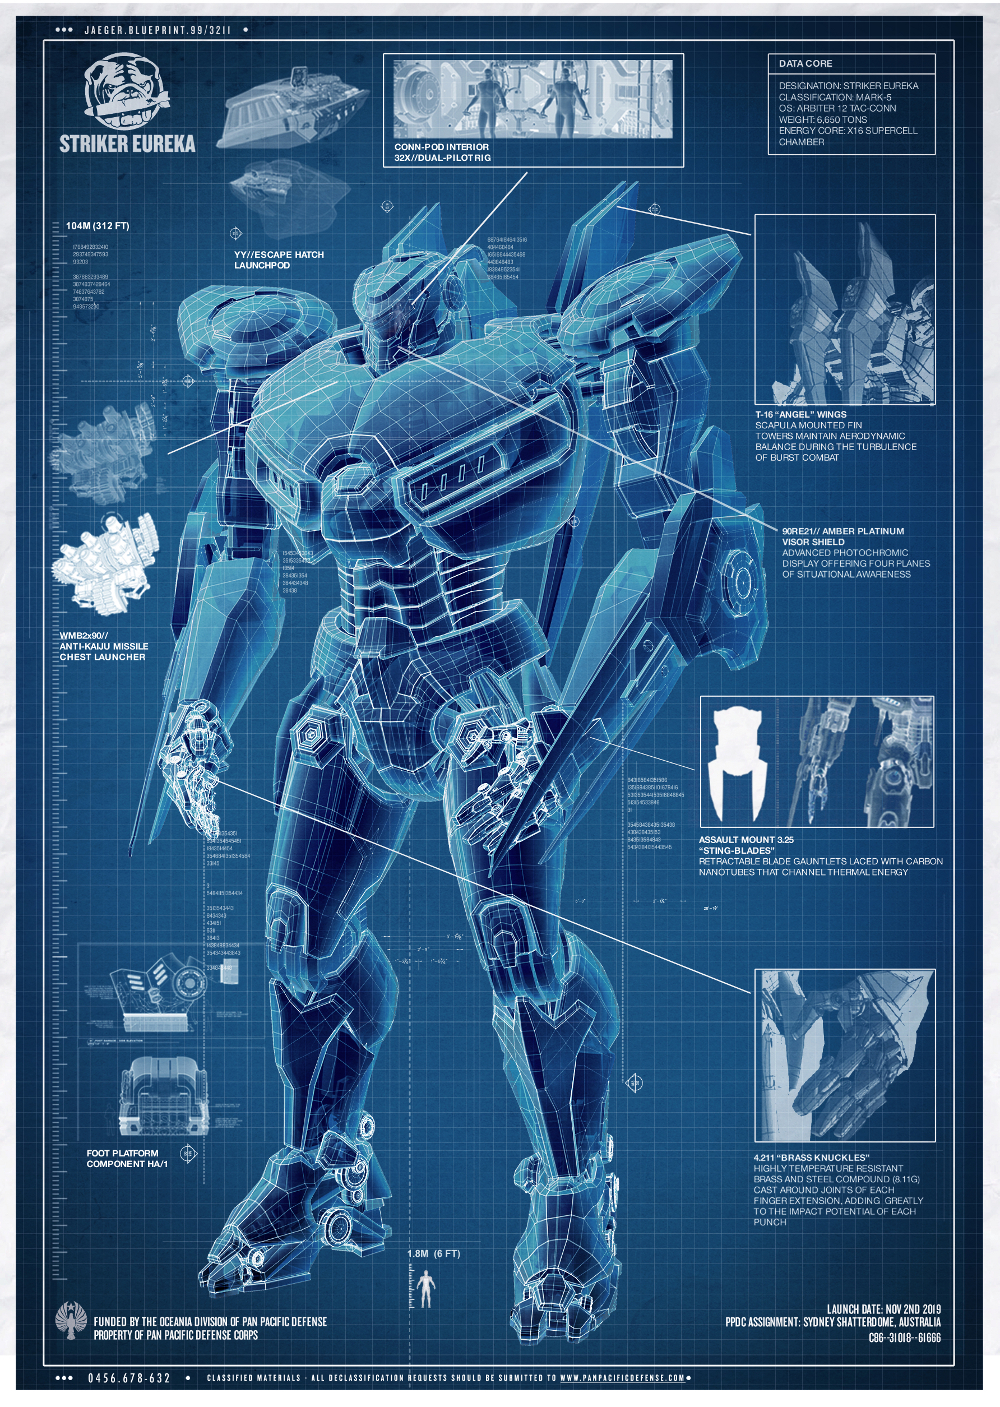 Striker eureka jaeger pacific rim wiki fandom powered by wikia striker eureka blueprints malvernweather Images